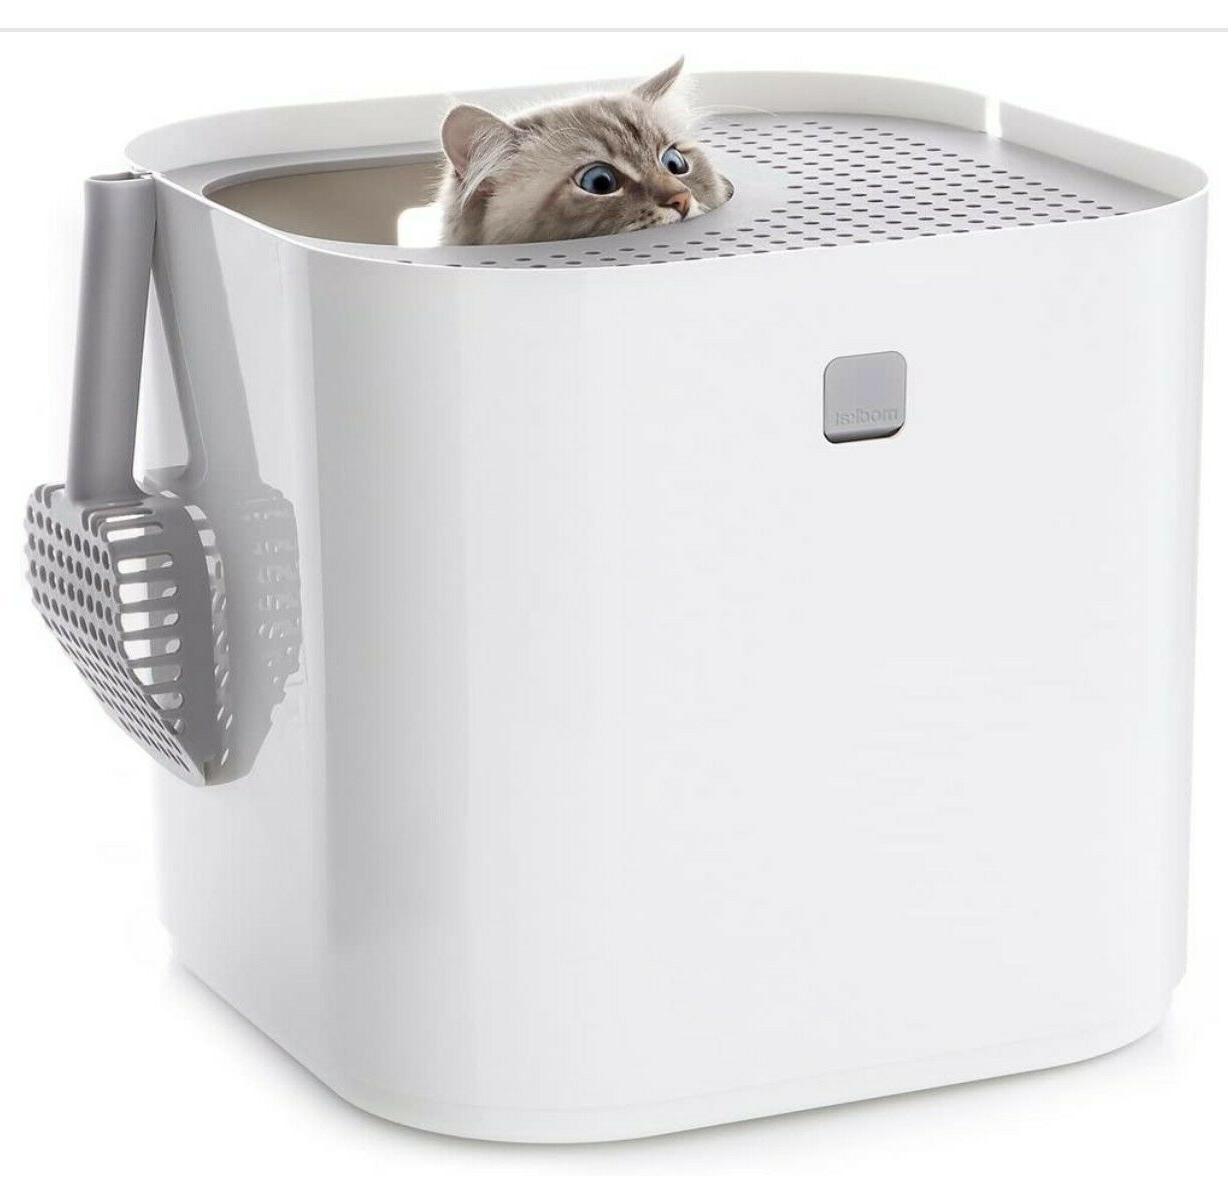 new unopened white litter box includes scoop